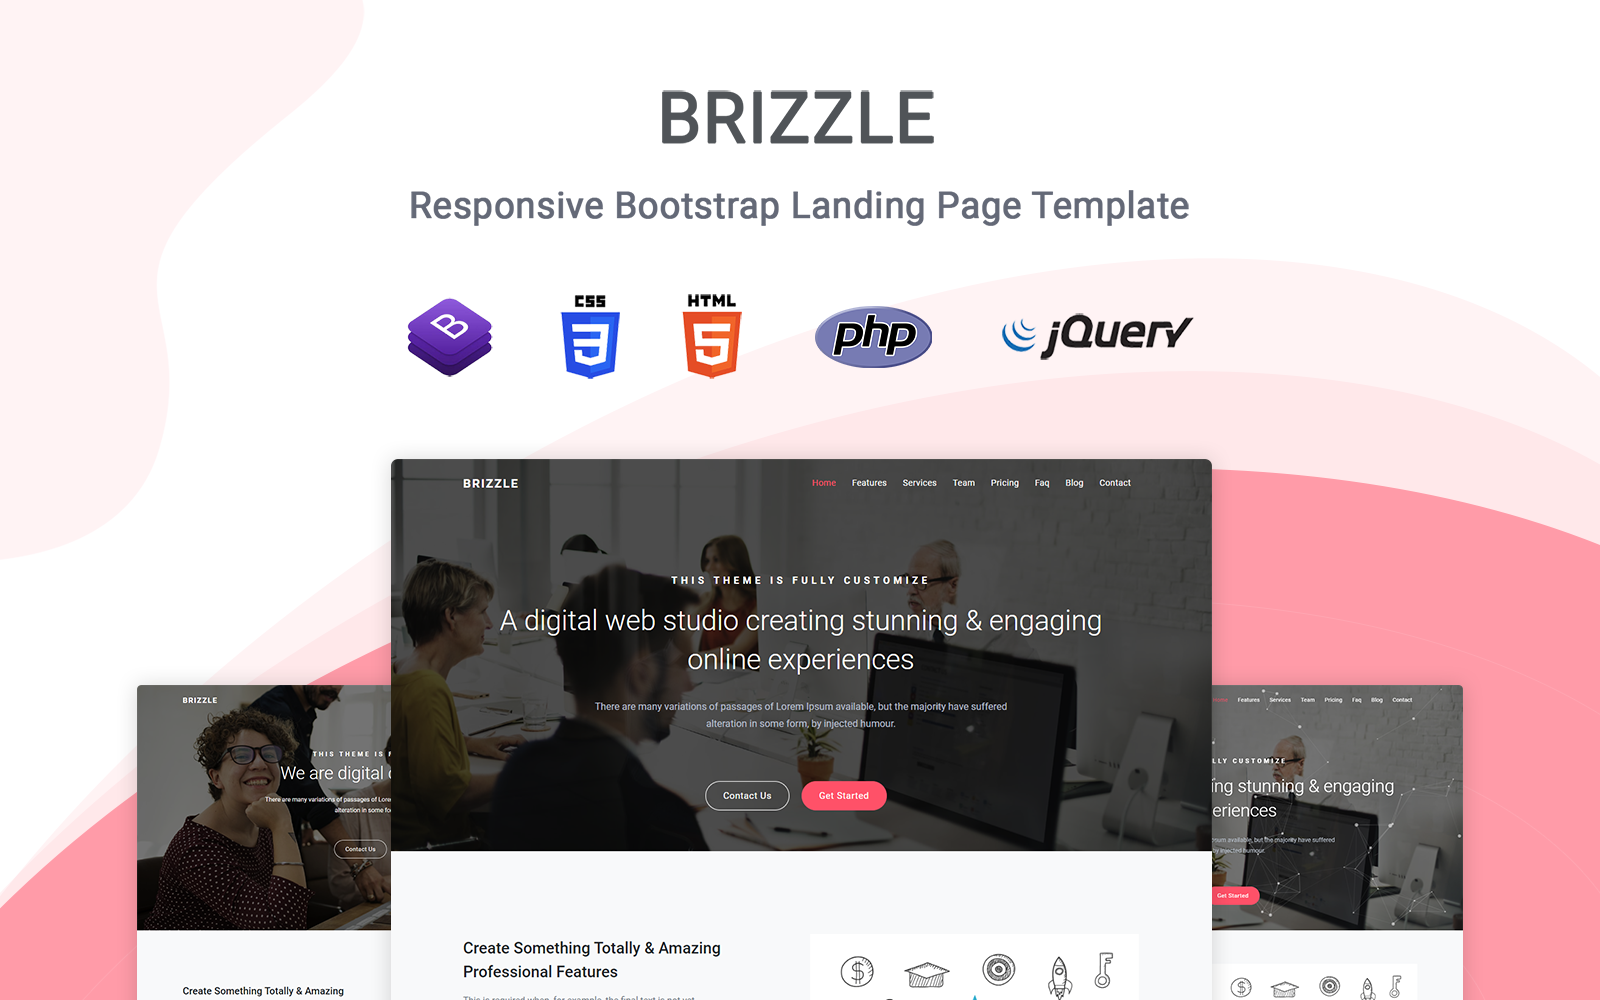 Brizzle - Responsive Landing Page Template